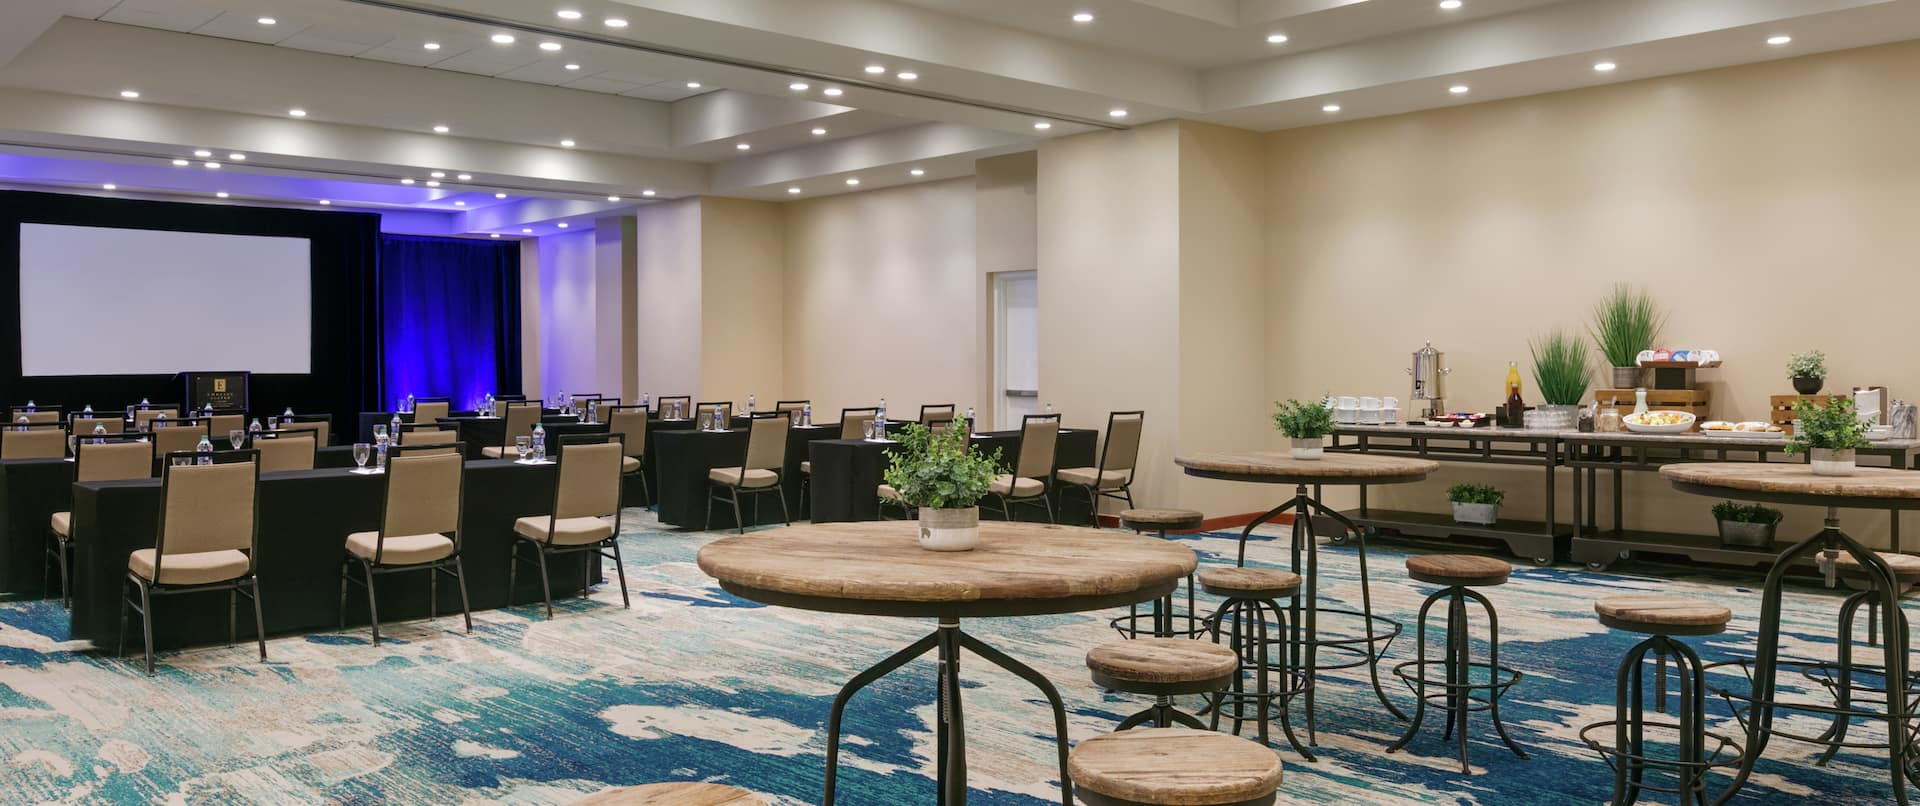 Spacious Tropico meeting room featuring classroom setup, social seating area, and refreshment station.